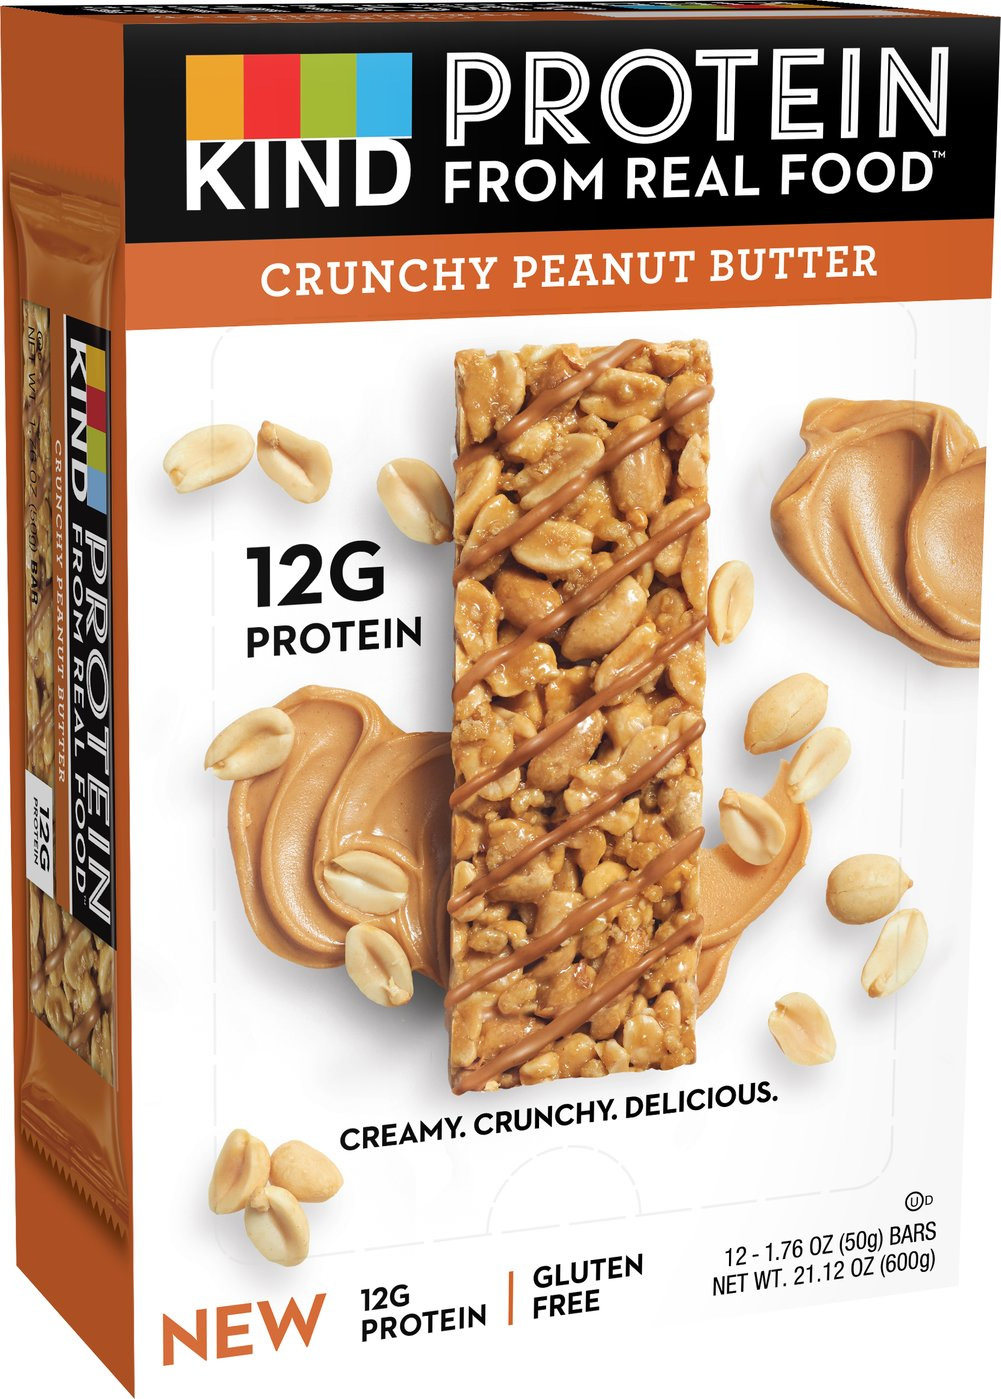 KIND Protein Bars, Crunchy Peanut Butter, 12g Protein Thumbnail Alternate Bottle View